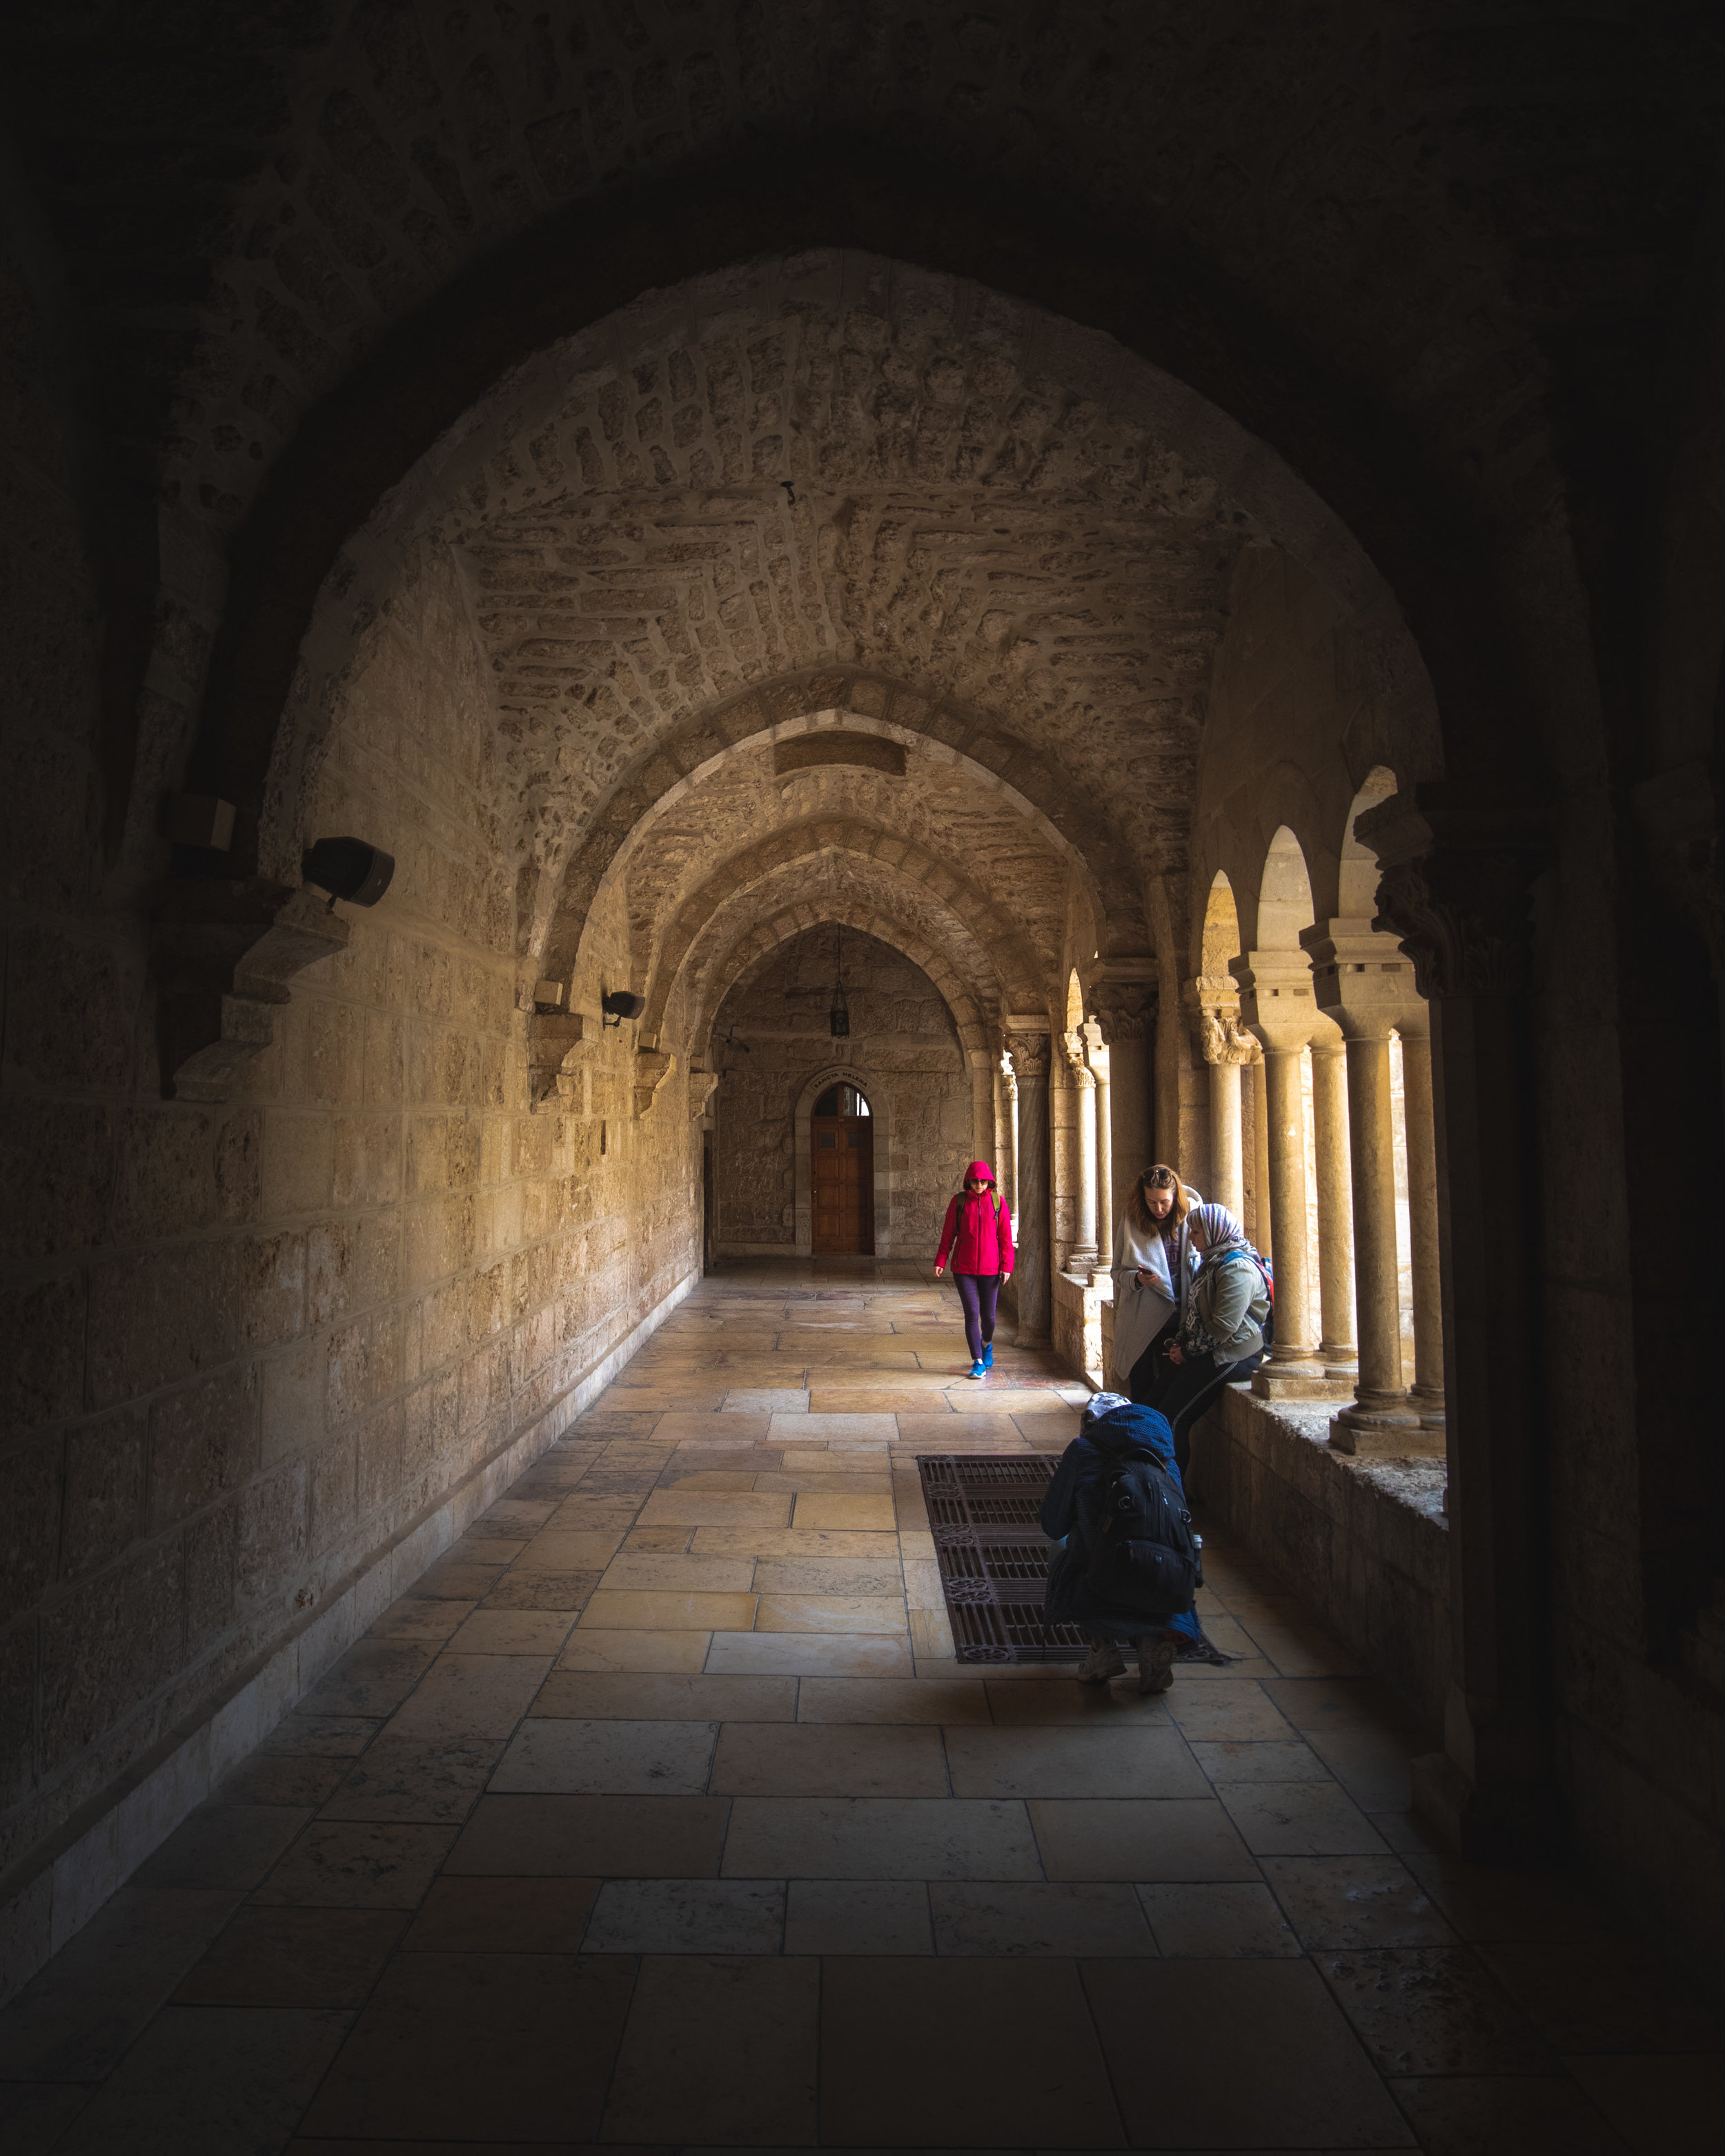 One of the corridors of the Church of the Nativity